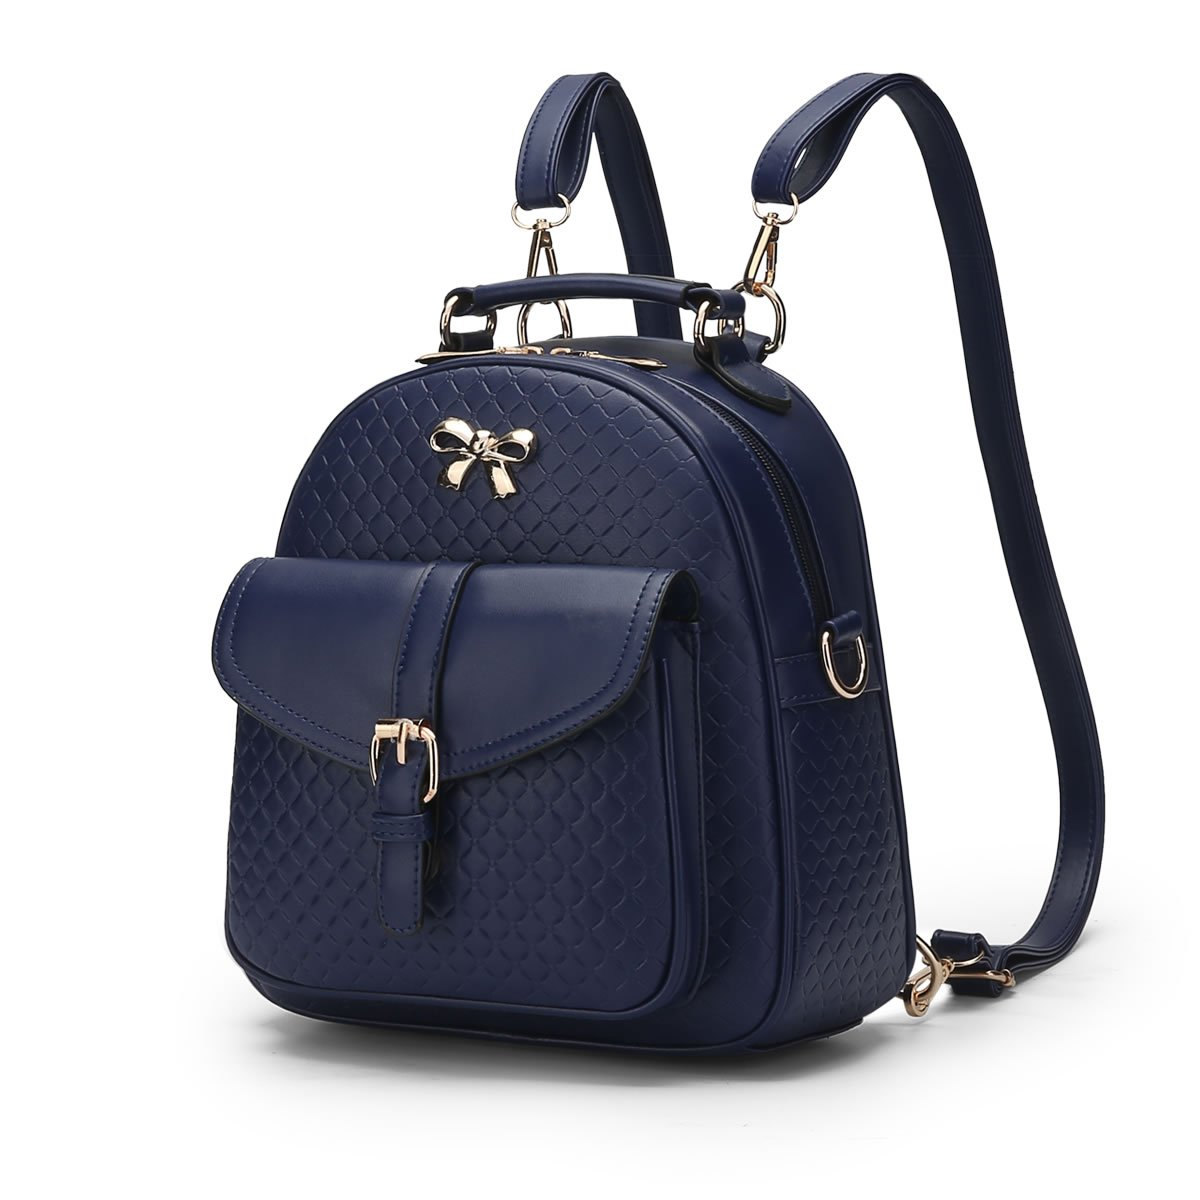 MSZYZ Women's shoulder bag spring and summer young girl's small backpack,blue,24.51026CM